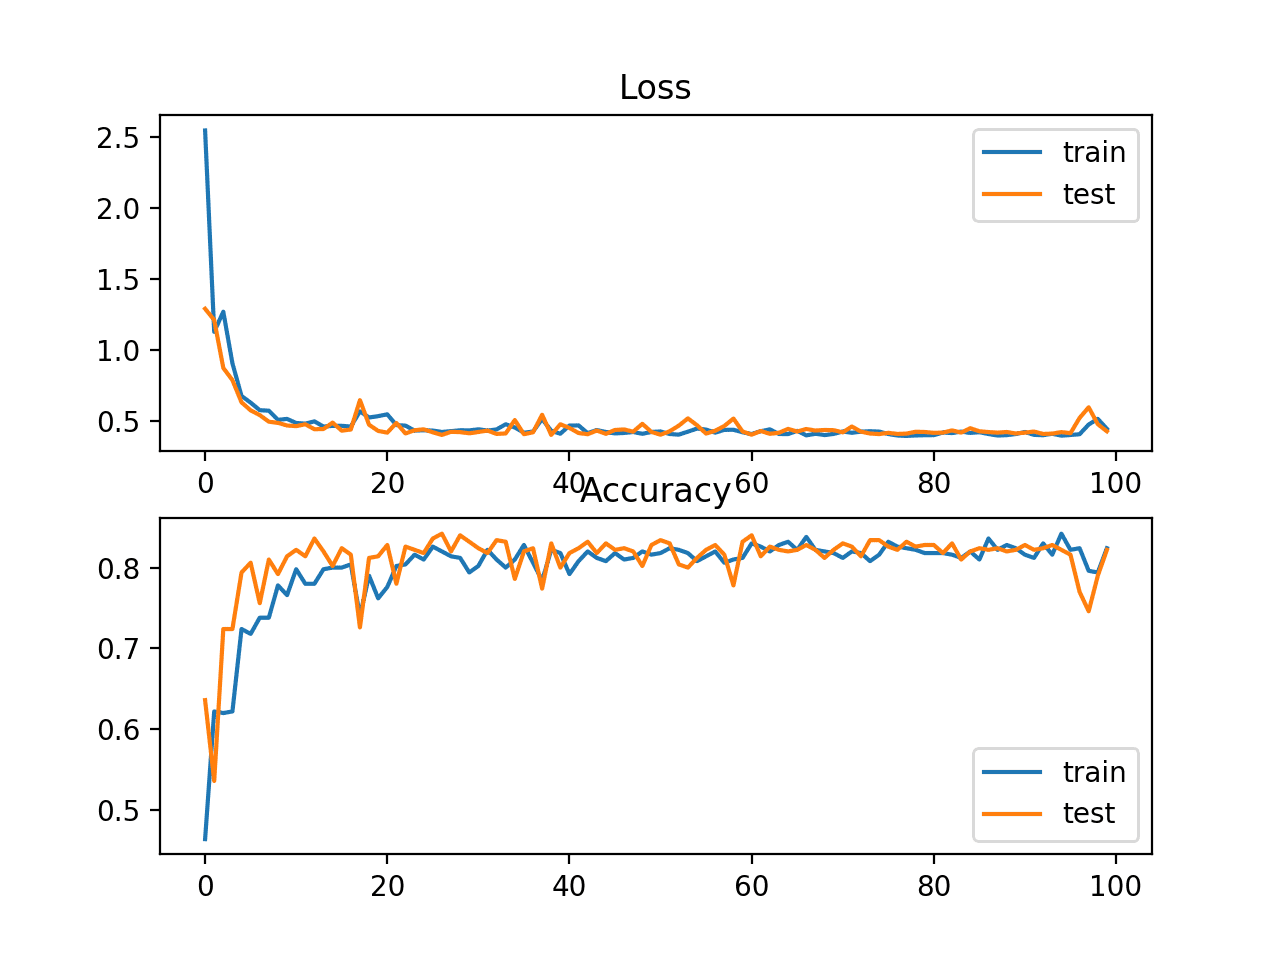 Line Plots of KL Divergence Loss and Classification Accuracy over Training Epochs on the Blobs Multi-Class Classification Problem